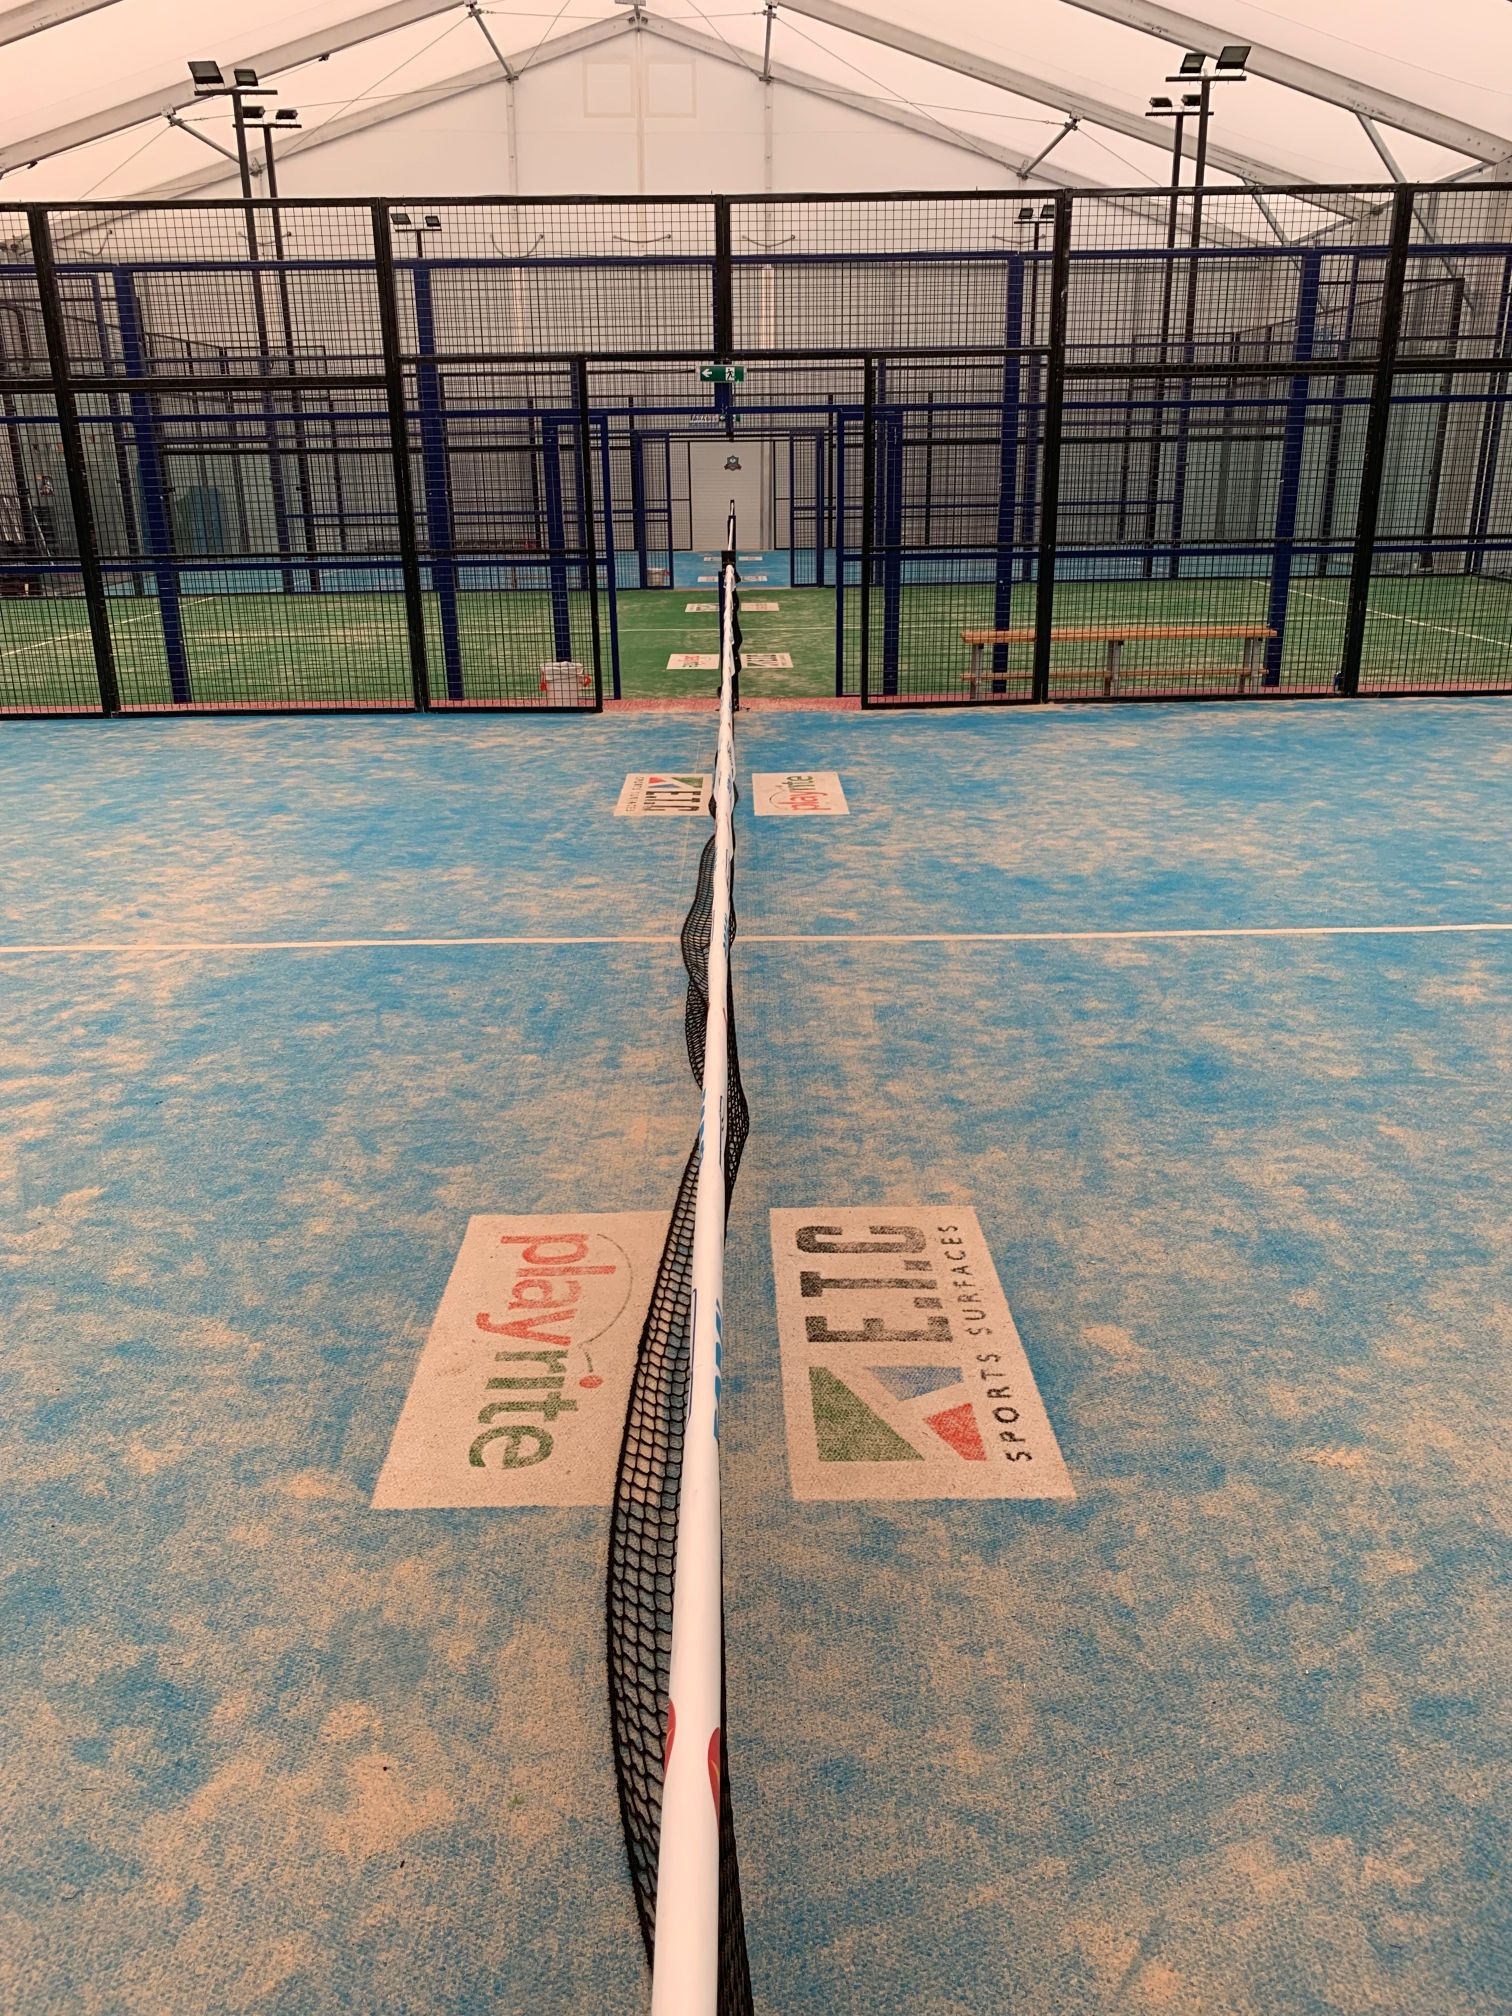 If you choose ETC Sports Surfaces as your supplier, a Padel tennis court costs less than you might think.